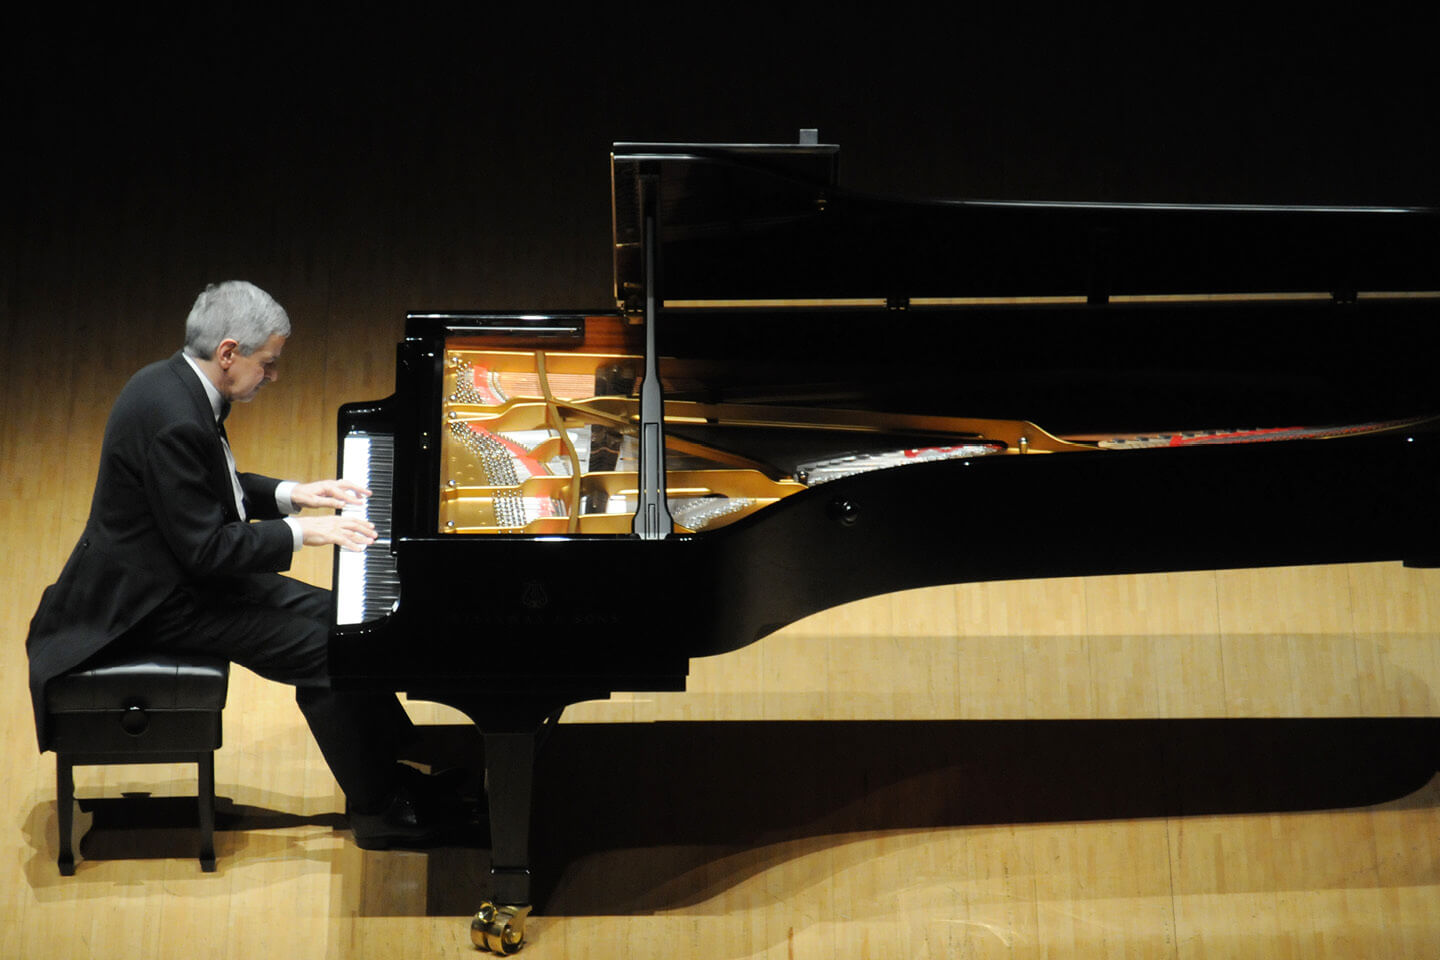 Vieira plays at the Tokyo Metropolitan Theater Grand Concert Hall